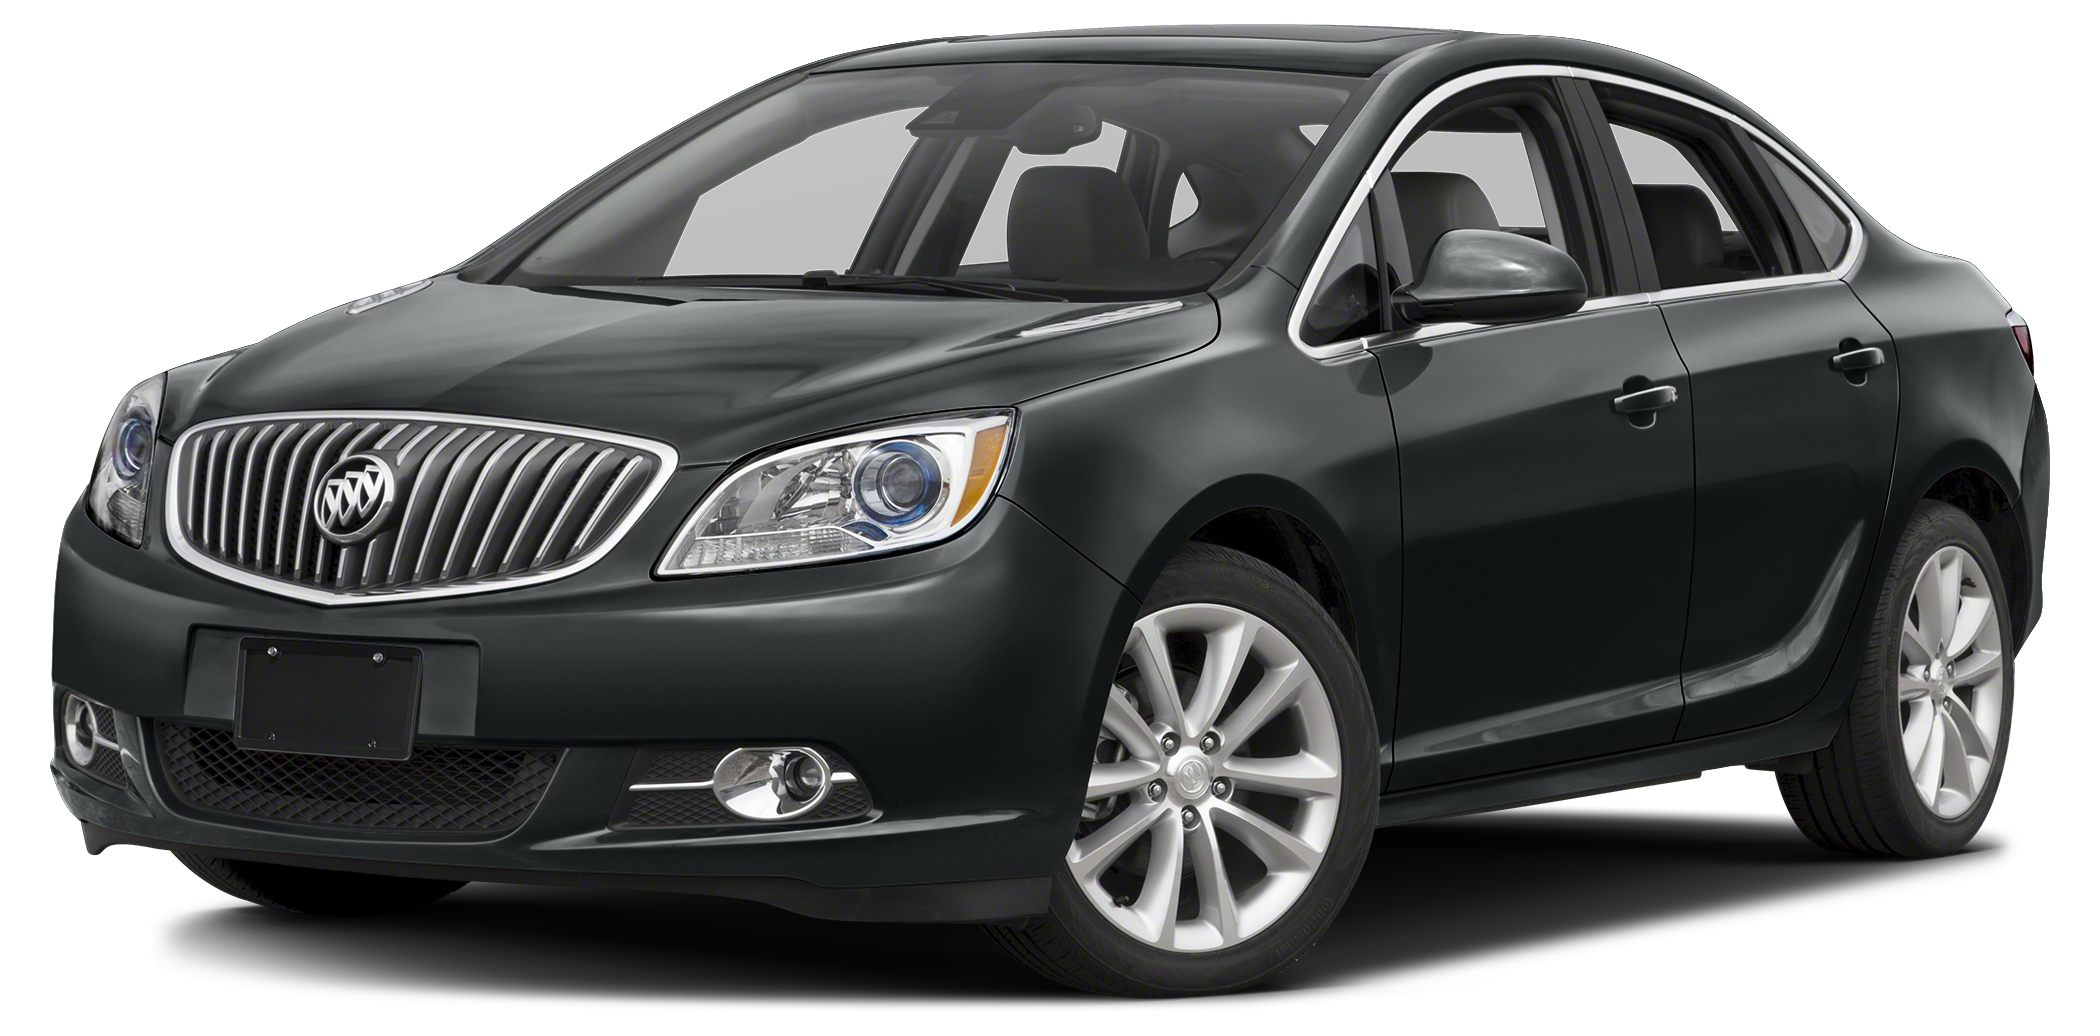 2015 Buick Verano Leather Group CARFAX 1-Owner Excellent Condition GREAT MILES 15535 FUEL EFFI